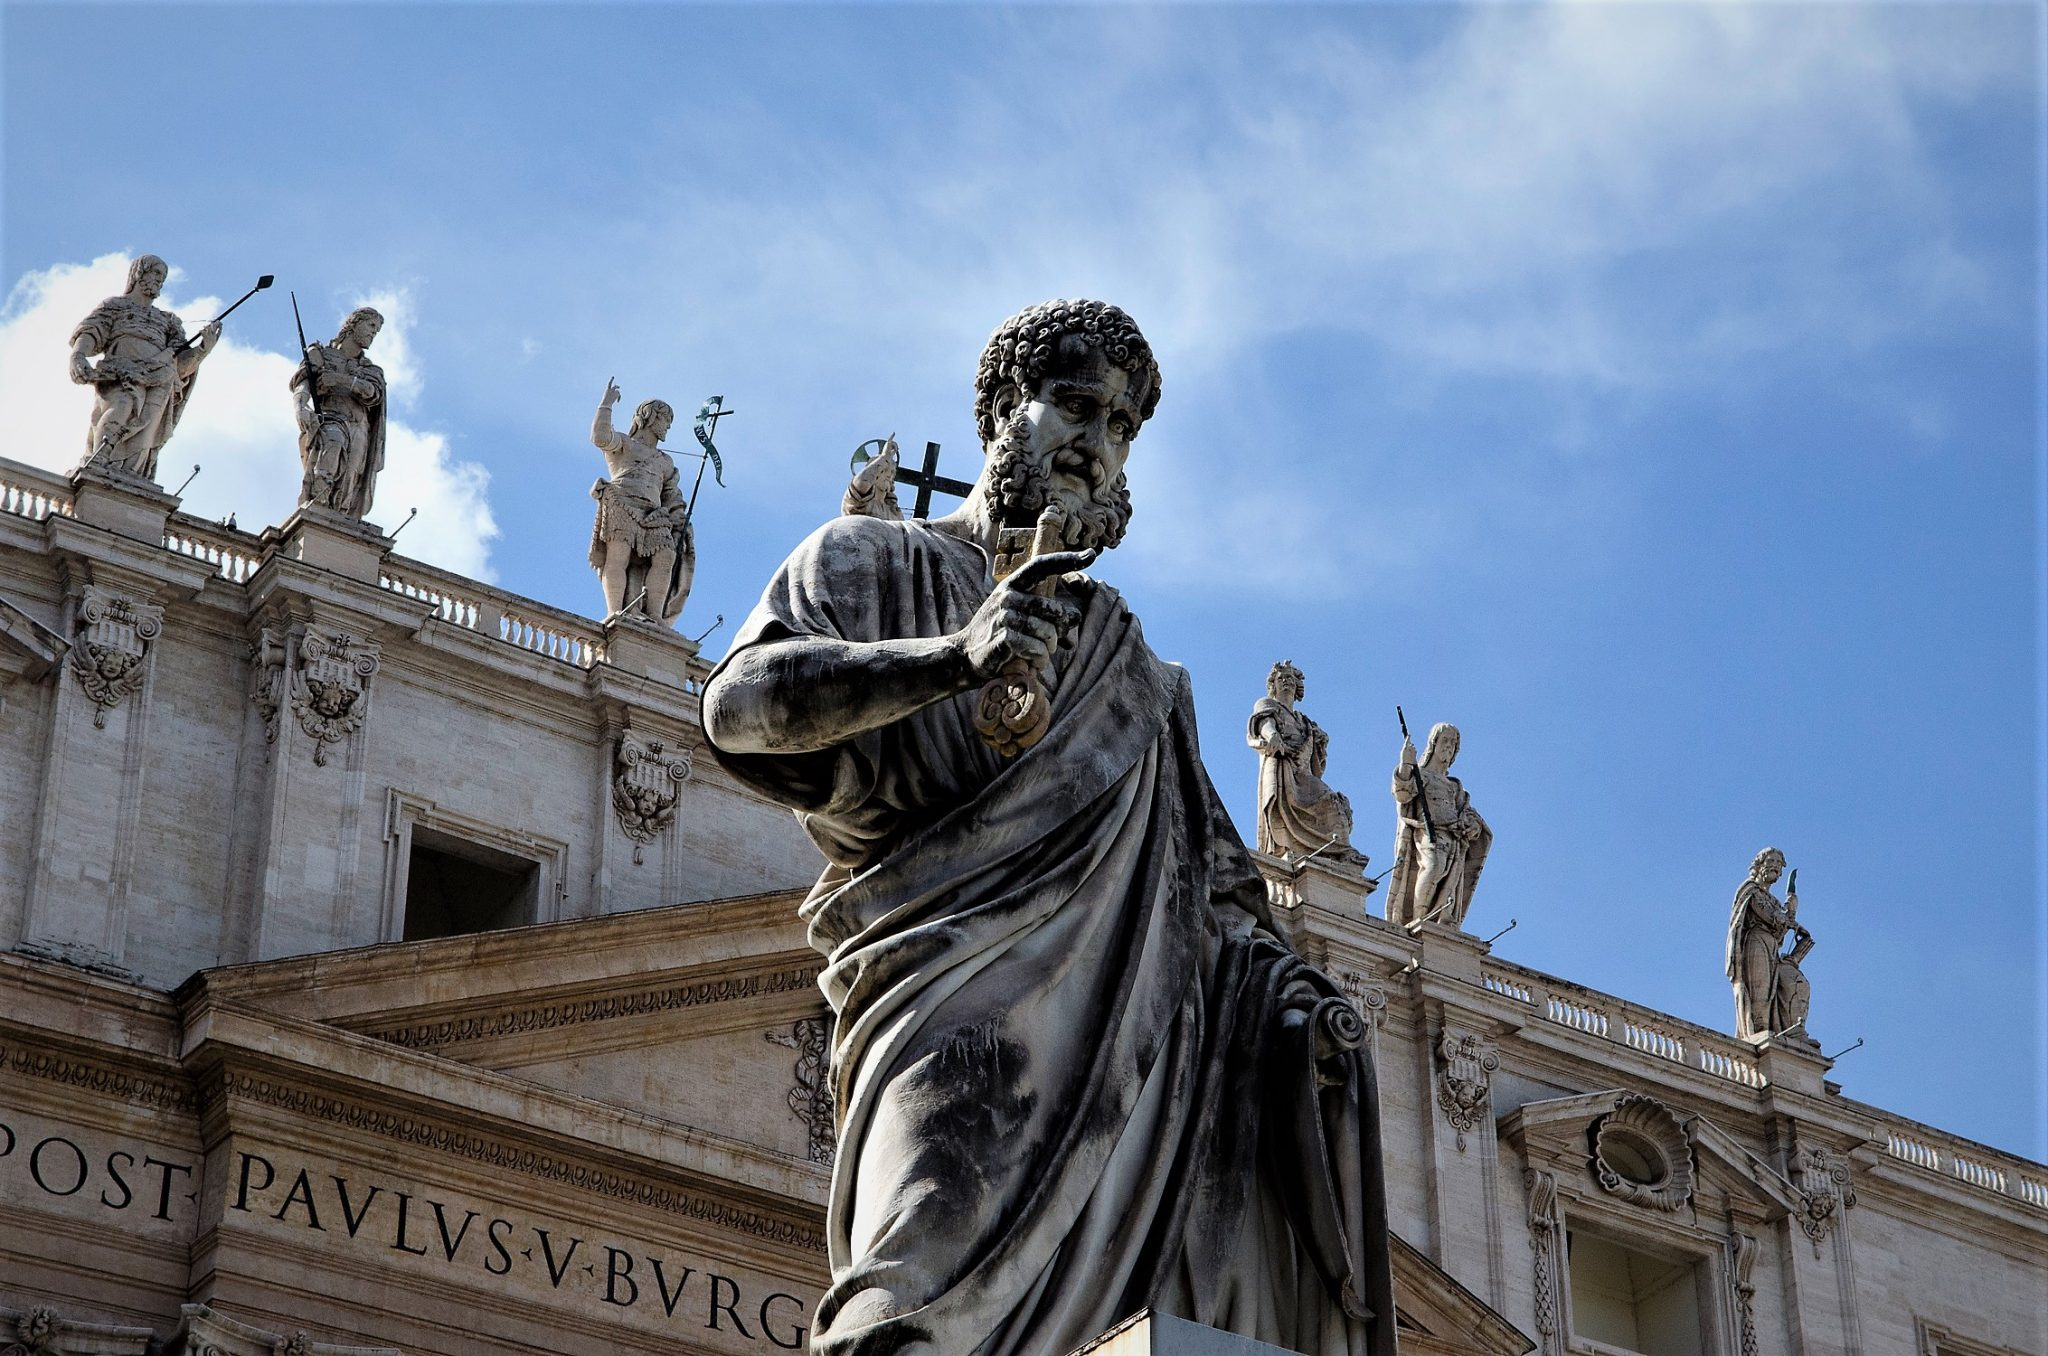 Pope Francis and the 'Paradigm Shift' in the Catholic Church